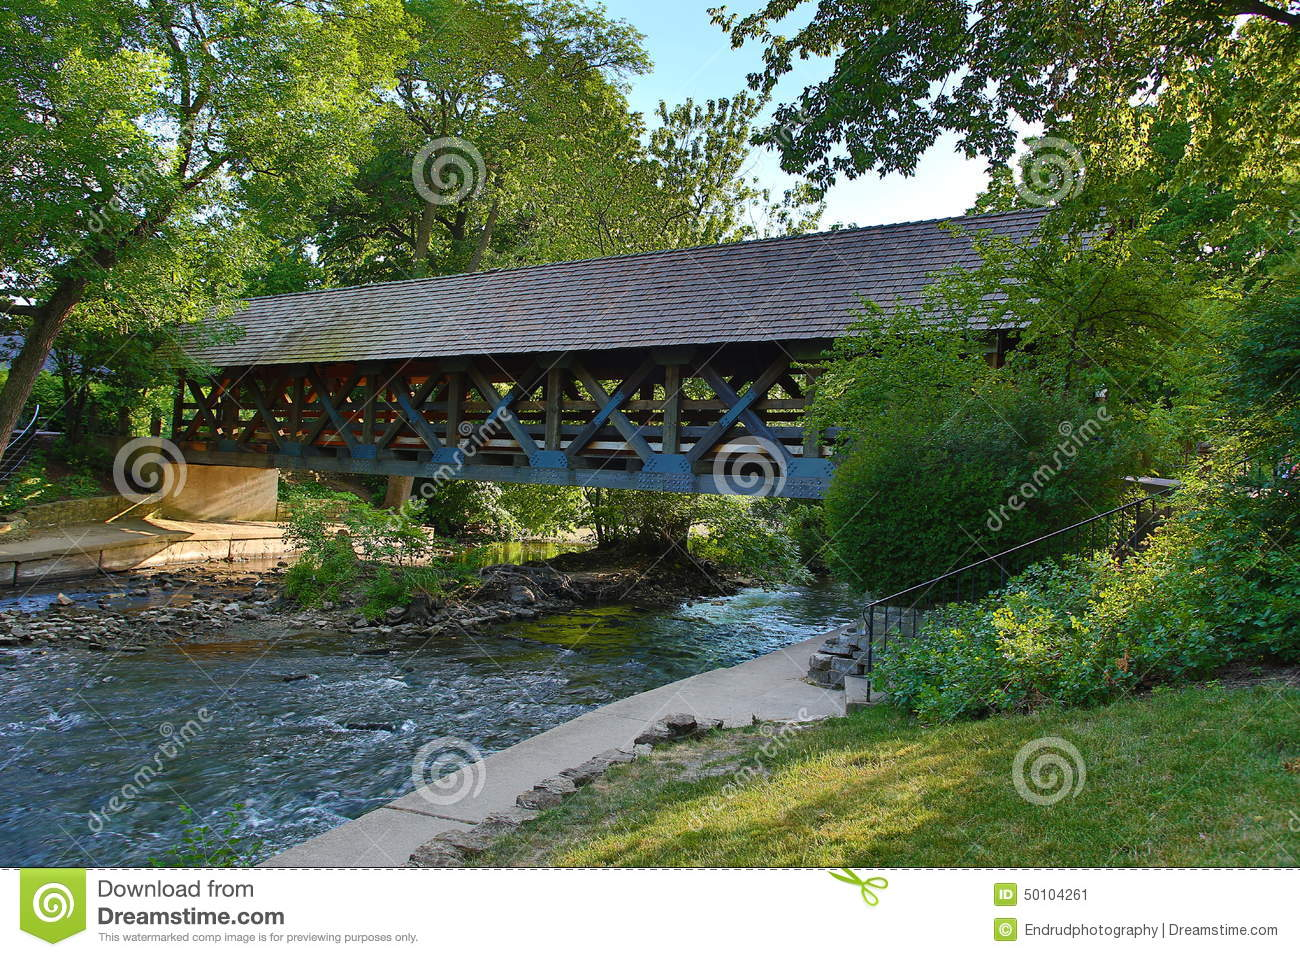 Covered Bridge over the DuPage River in Naperville, IL.